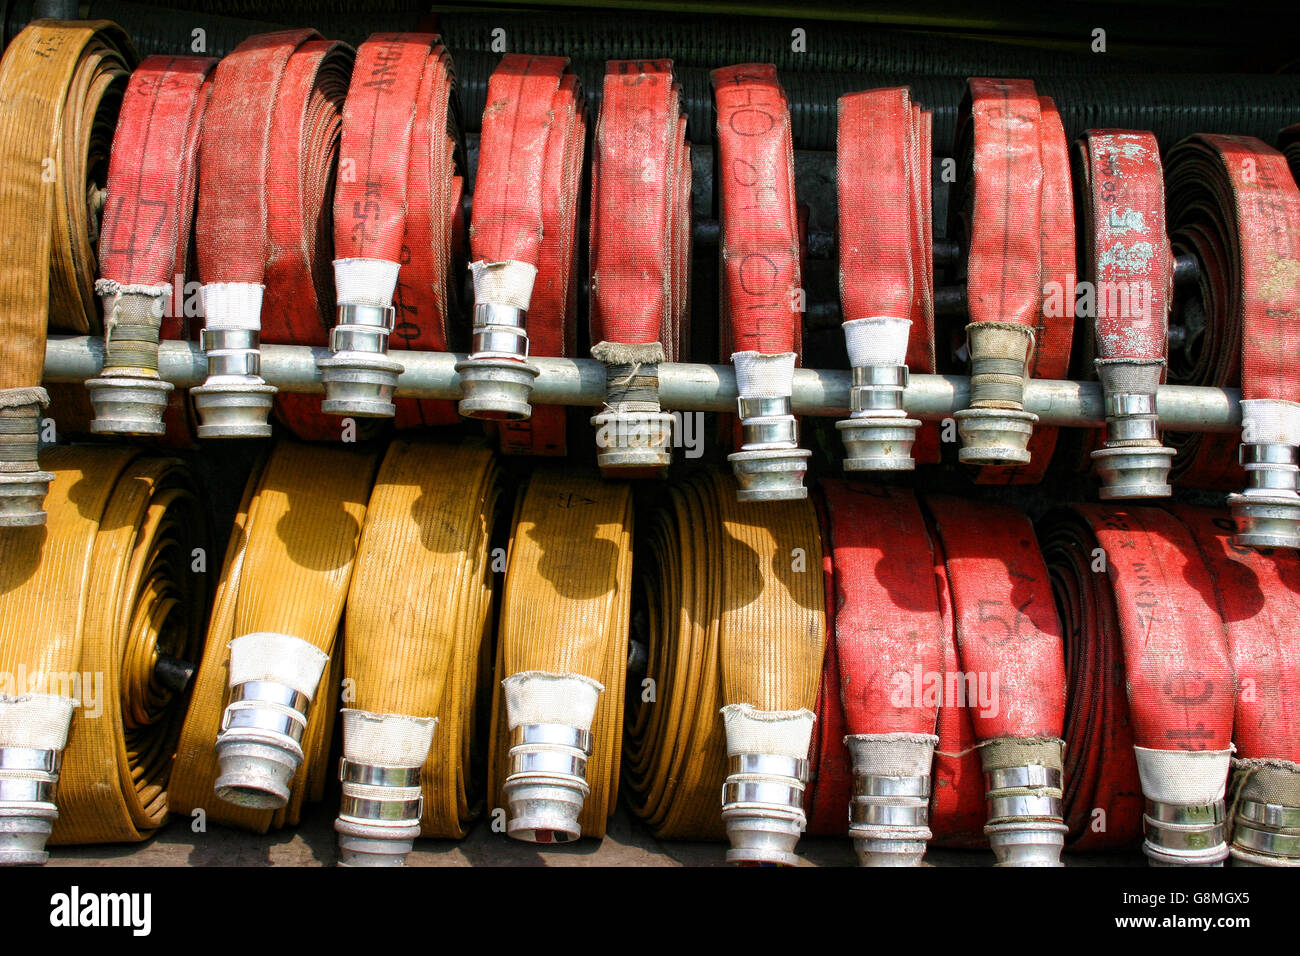 Fire hoses - Stock Image